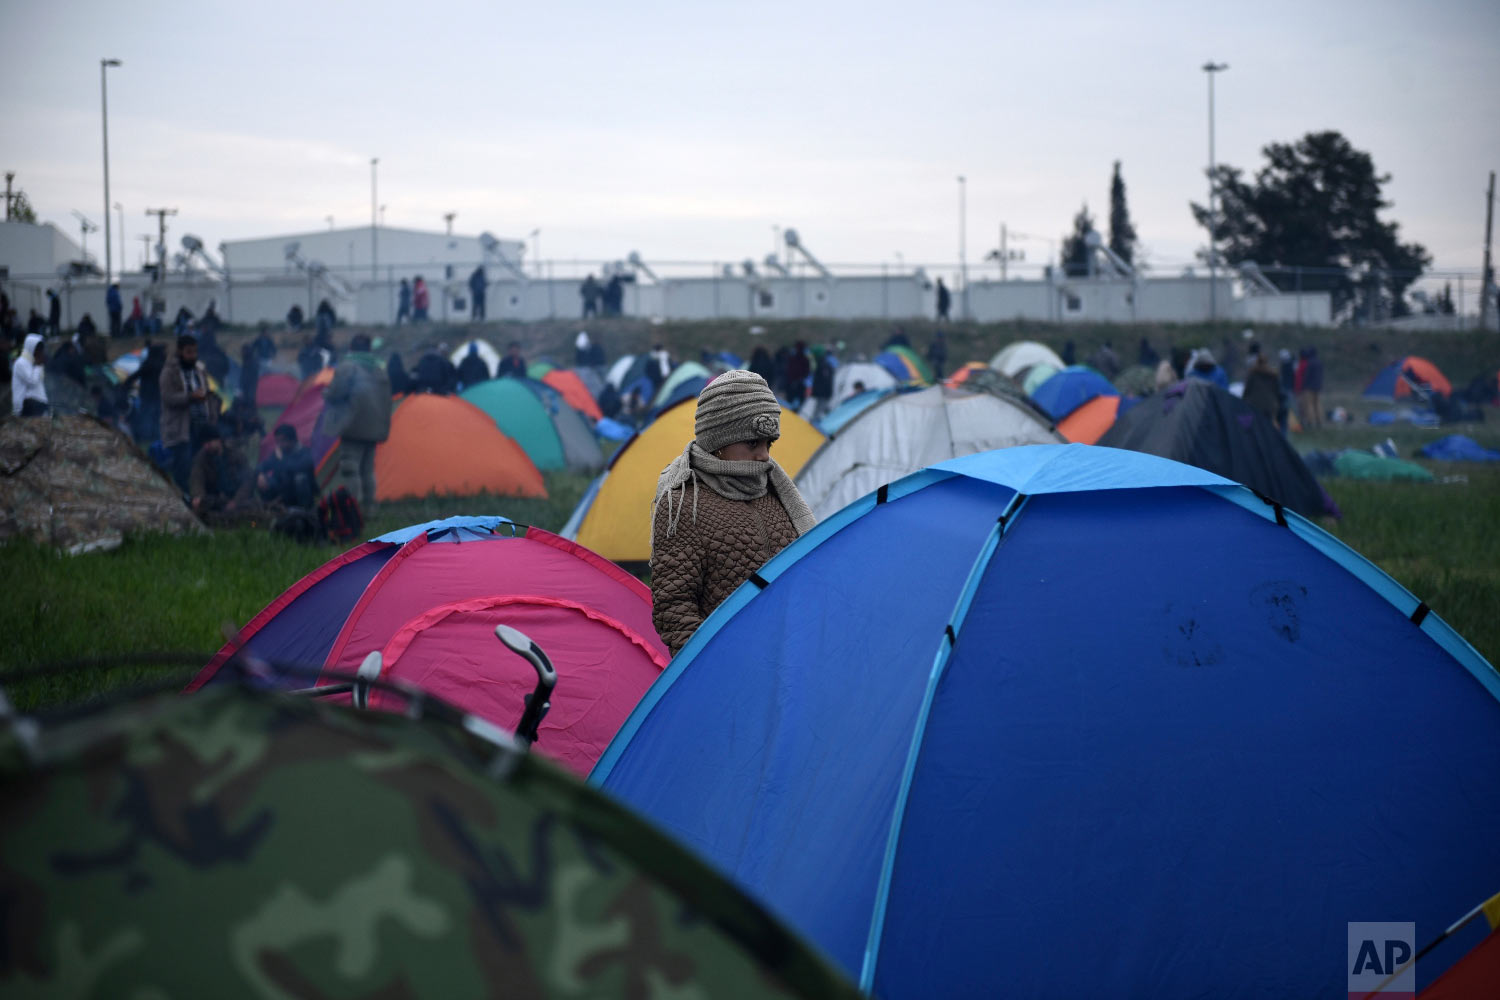 A girl stands next to a tent outside a refugee camp in the village of Diavata, west of Thessaloniki, northern Greece, Friday, April 5, 2019. (AP Photo/Giannis Papanikos)